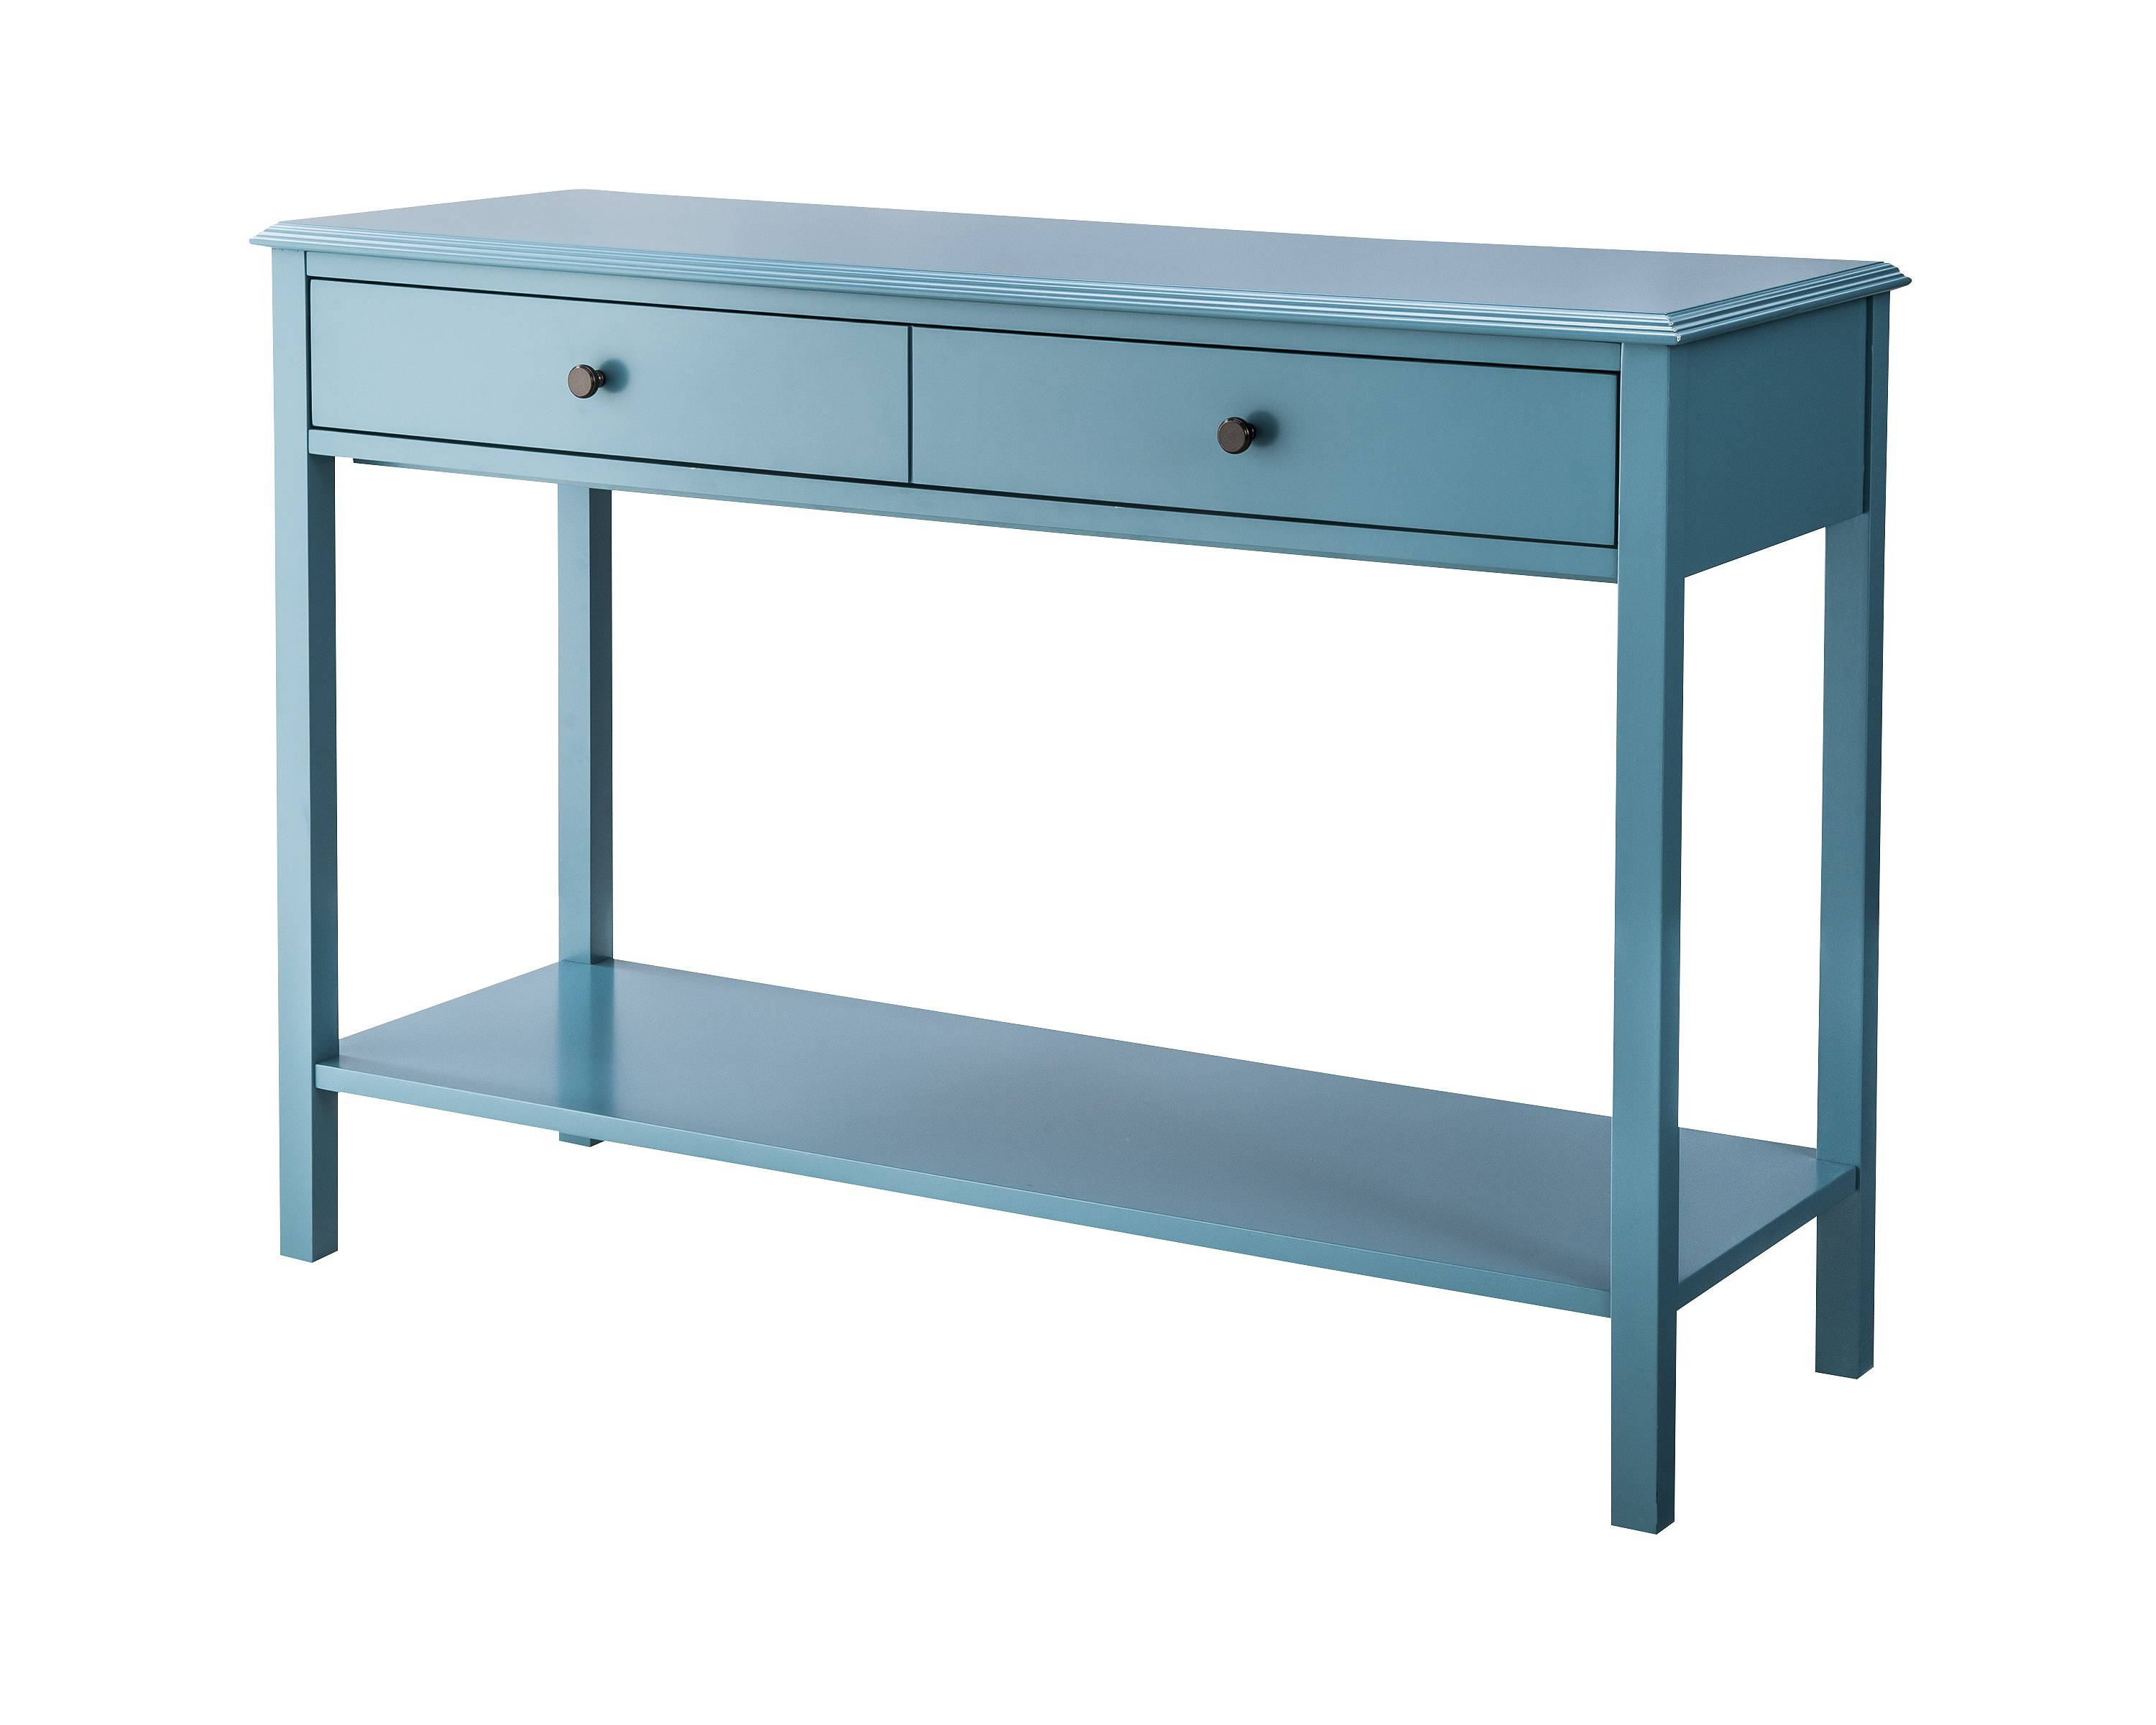 I love the color of this entryway table. Perfect for a coastal feel!